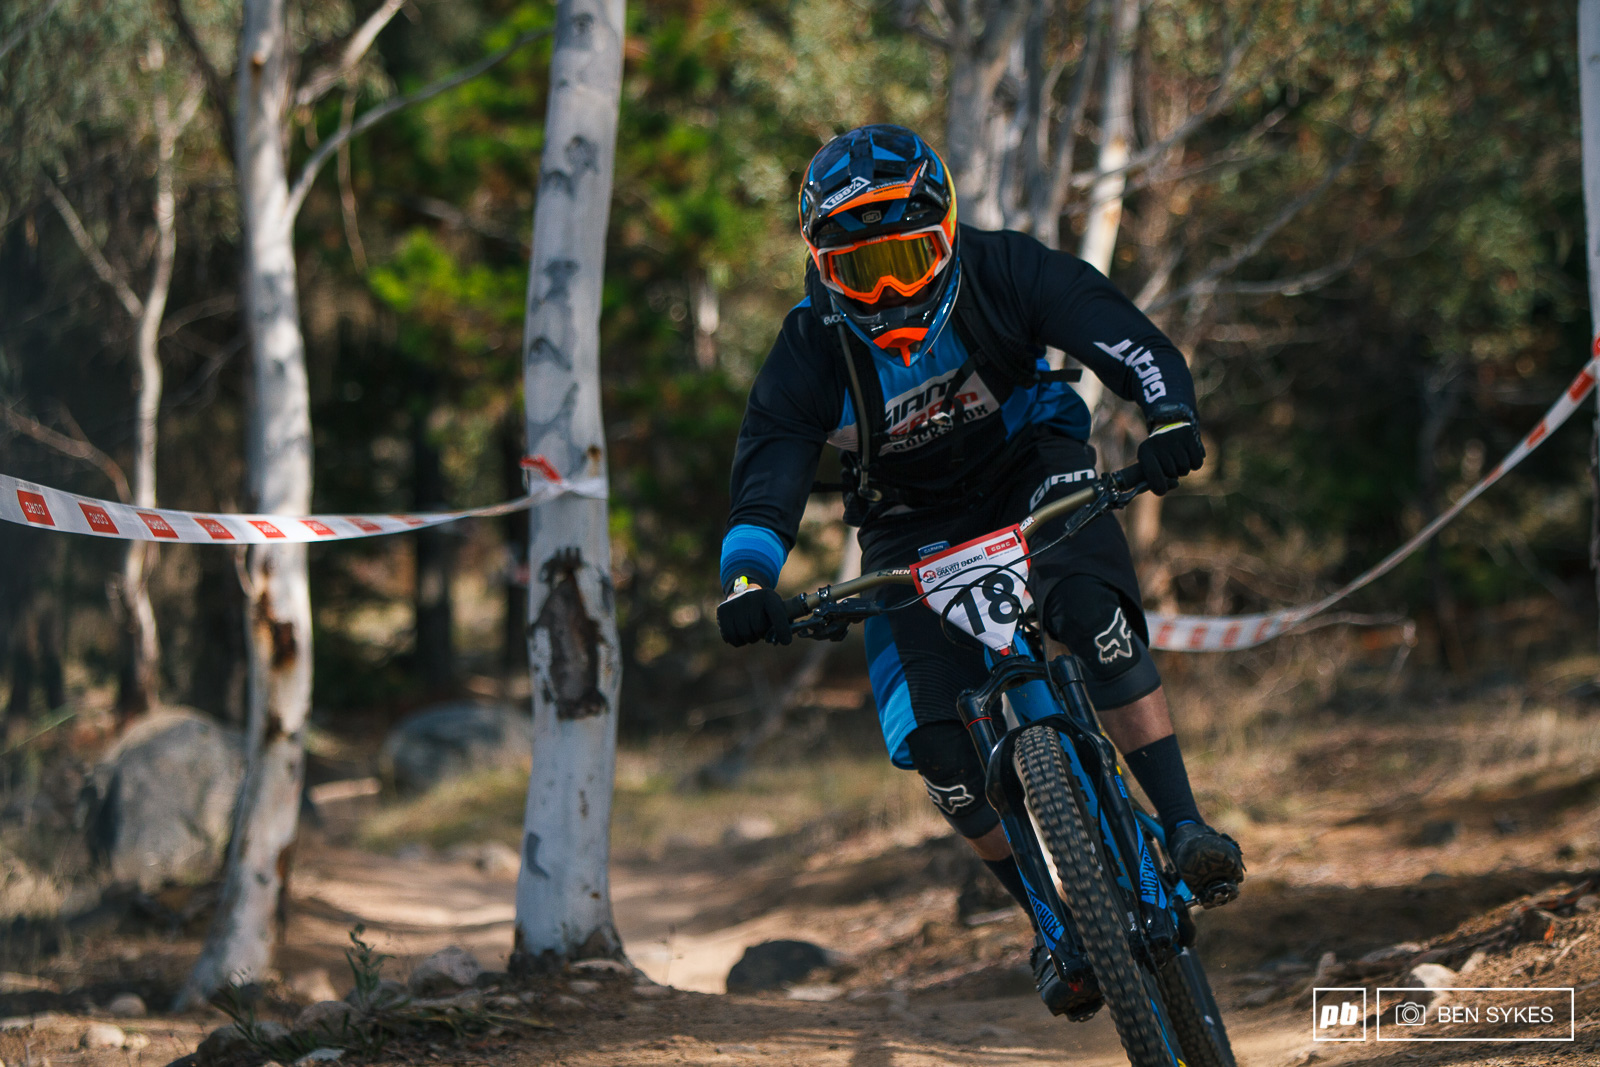 It was good to see Tim Eaton out having success on a trail bike.